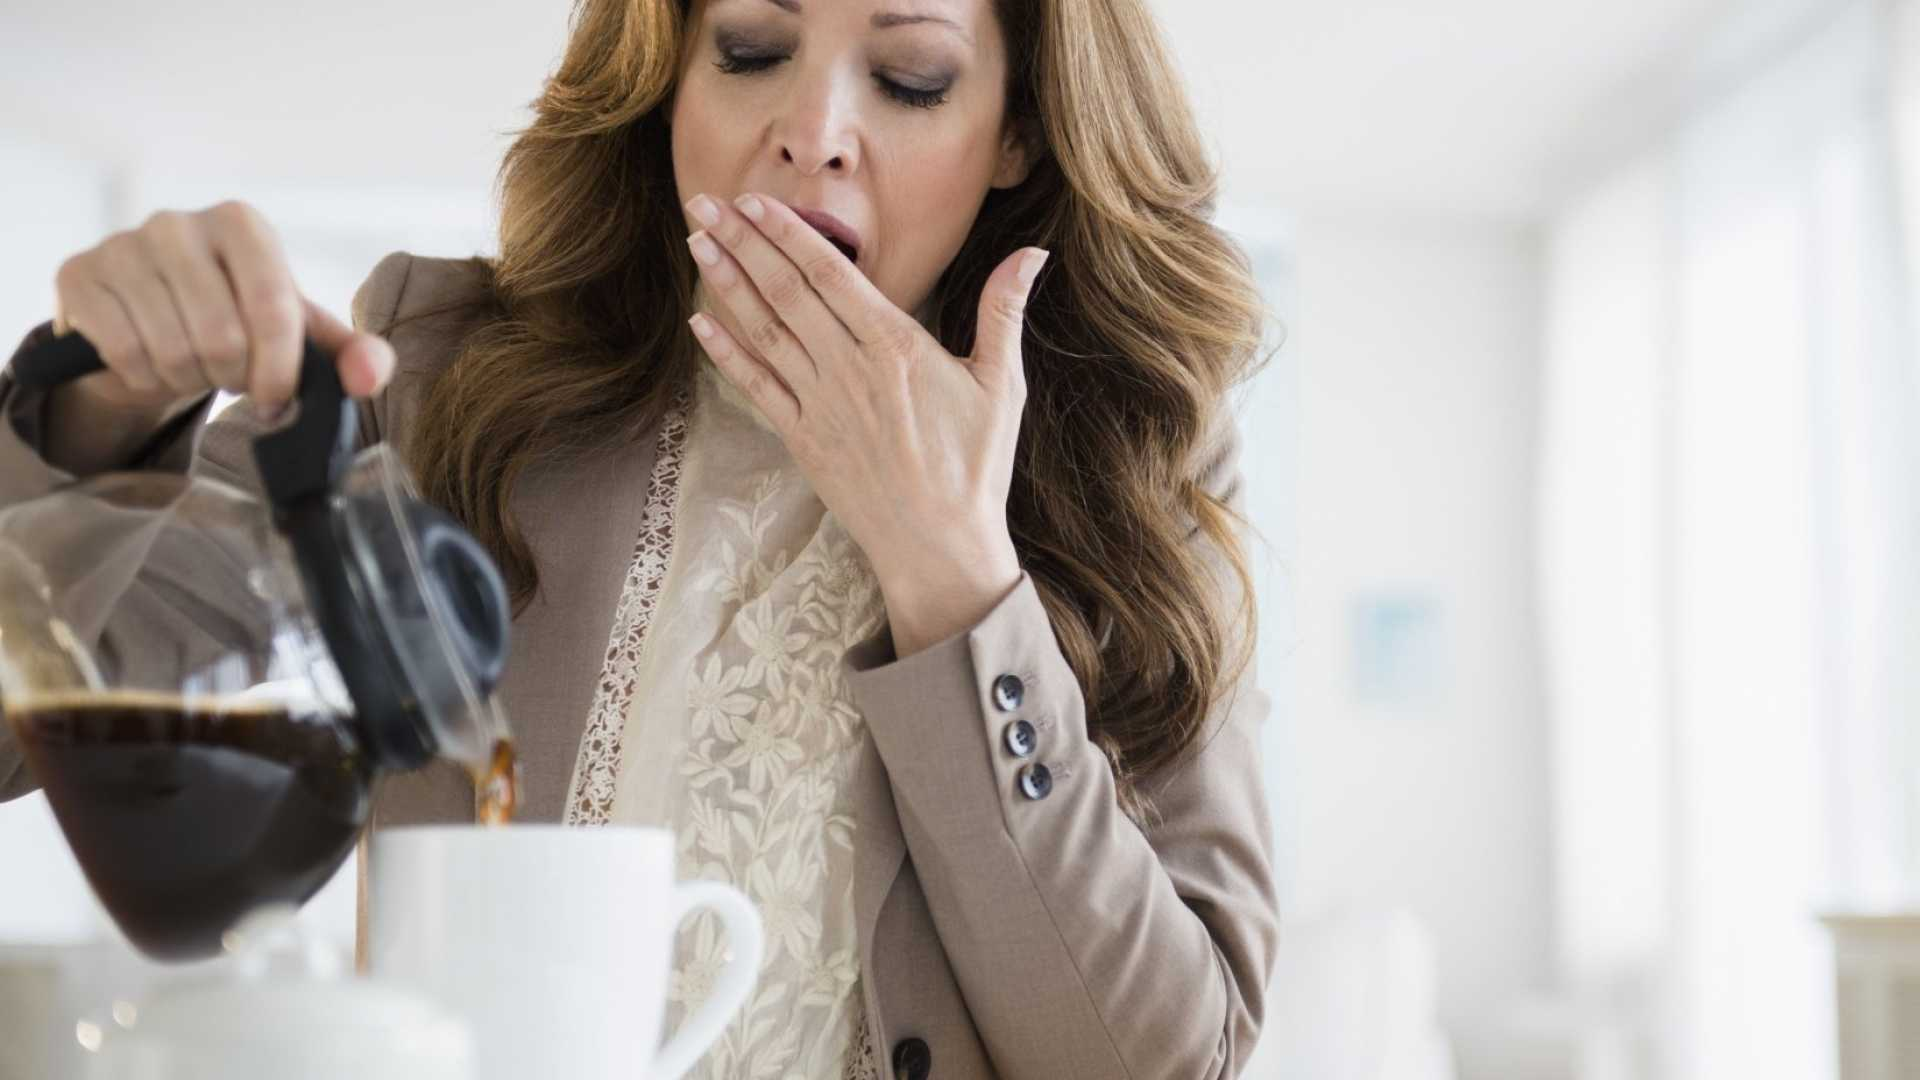 Science Says You Should Get Checked for Diabetes if You Do This (Especially at Work)